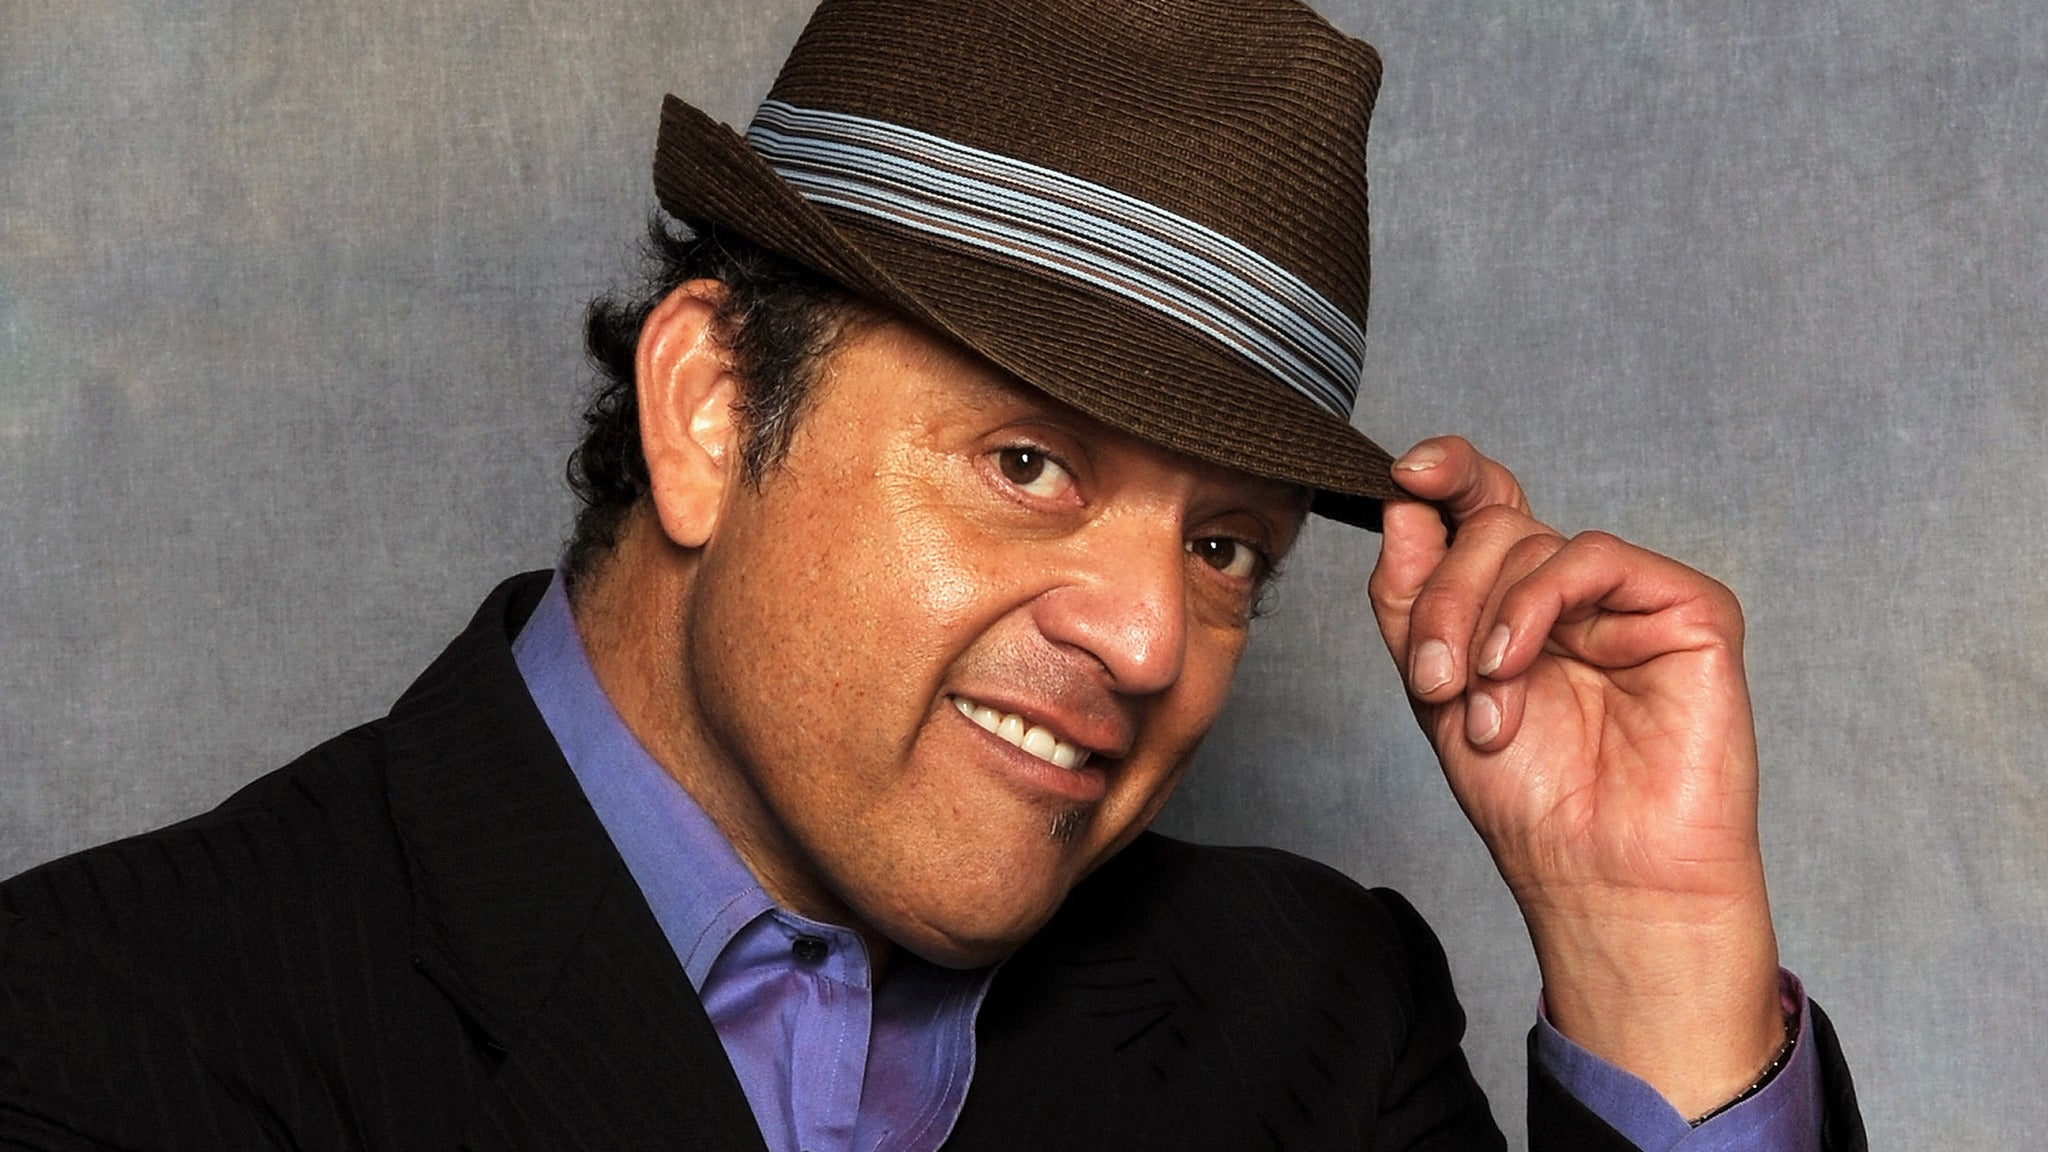 Paul Rodriguez at Oxnard Levity Live